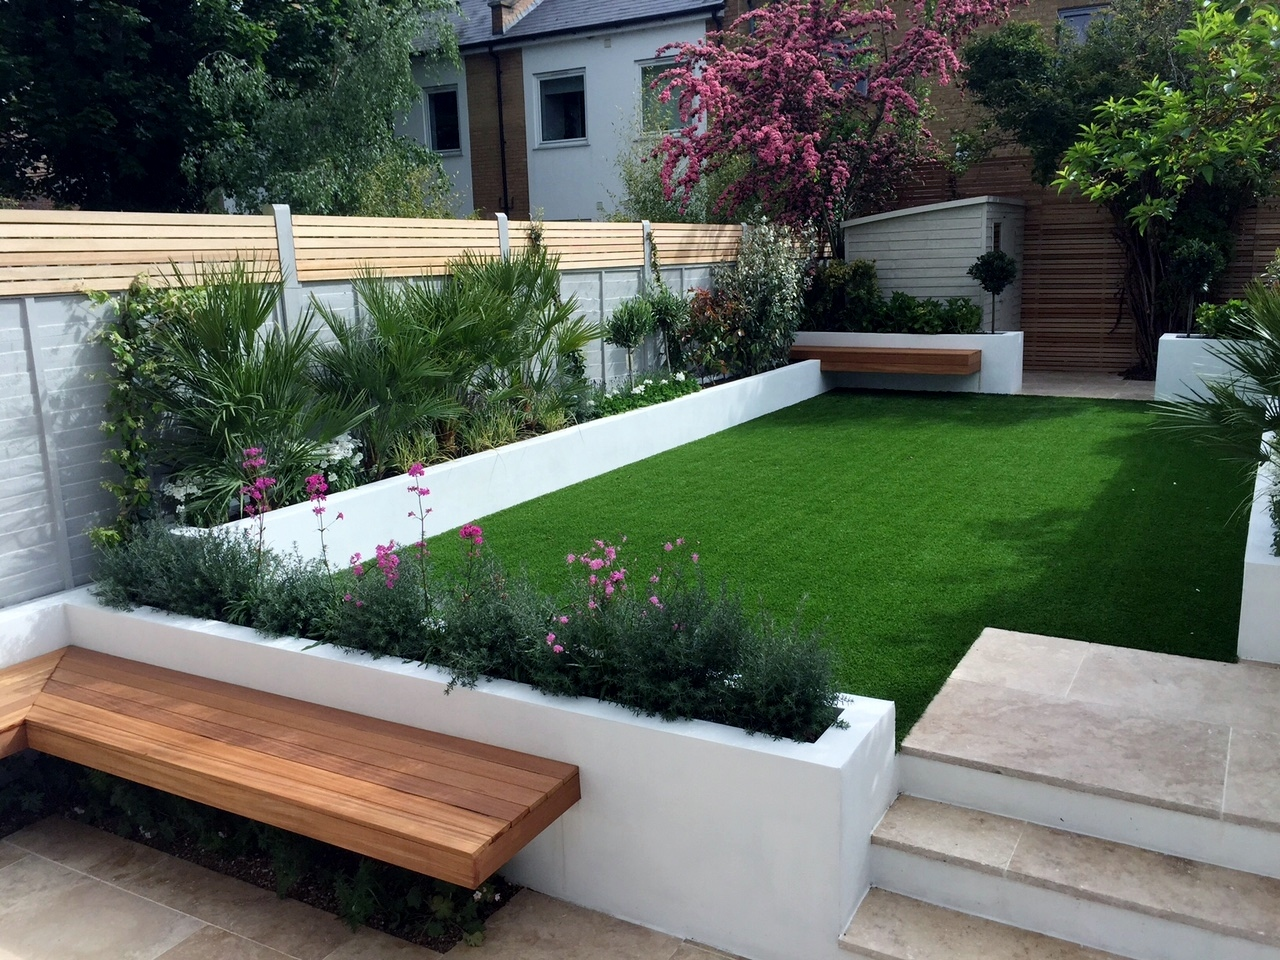 Modern garden design ideas fulham chelsea battersea for Modern garden